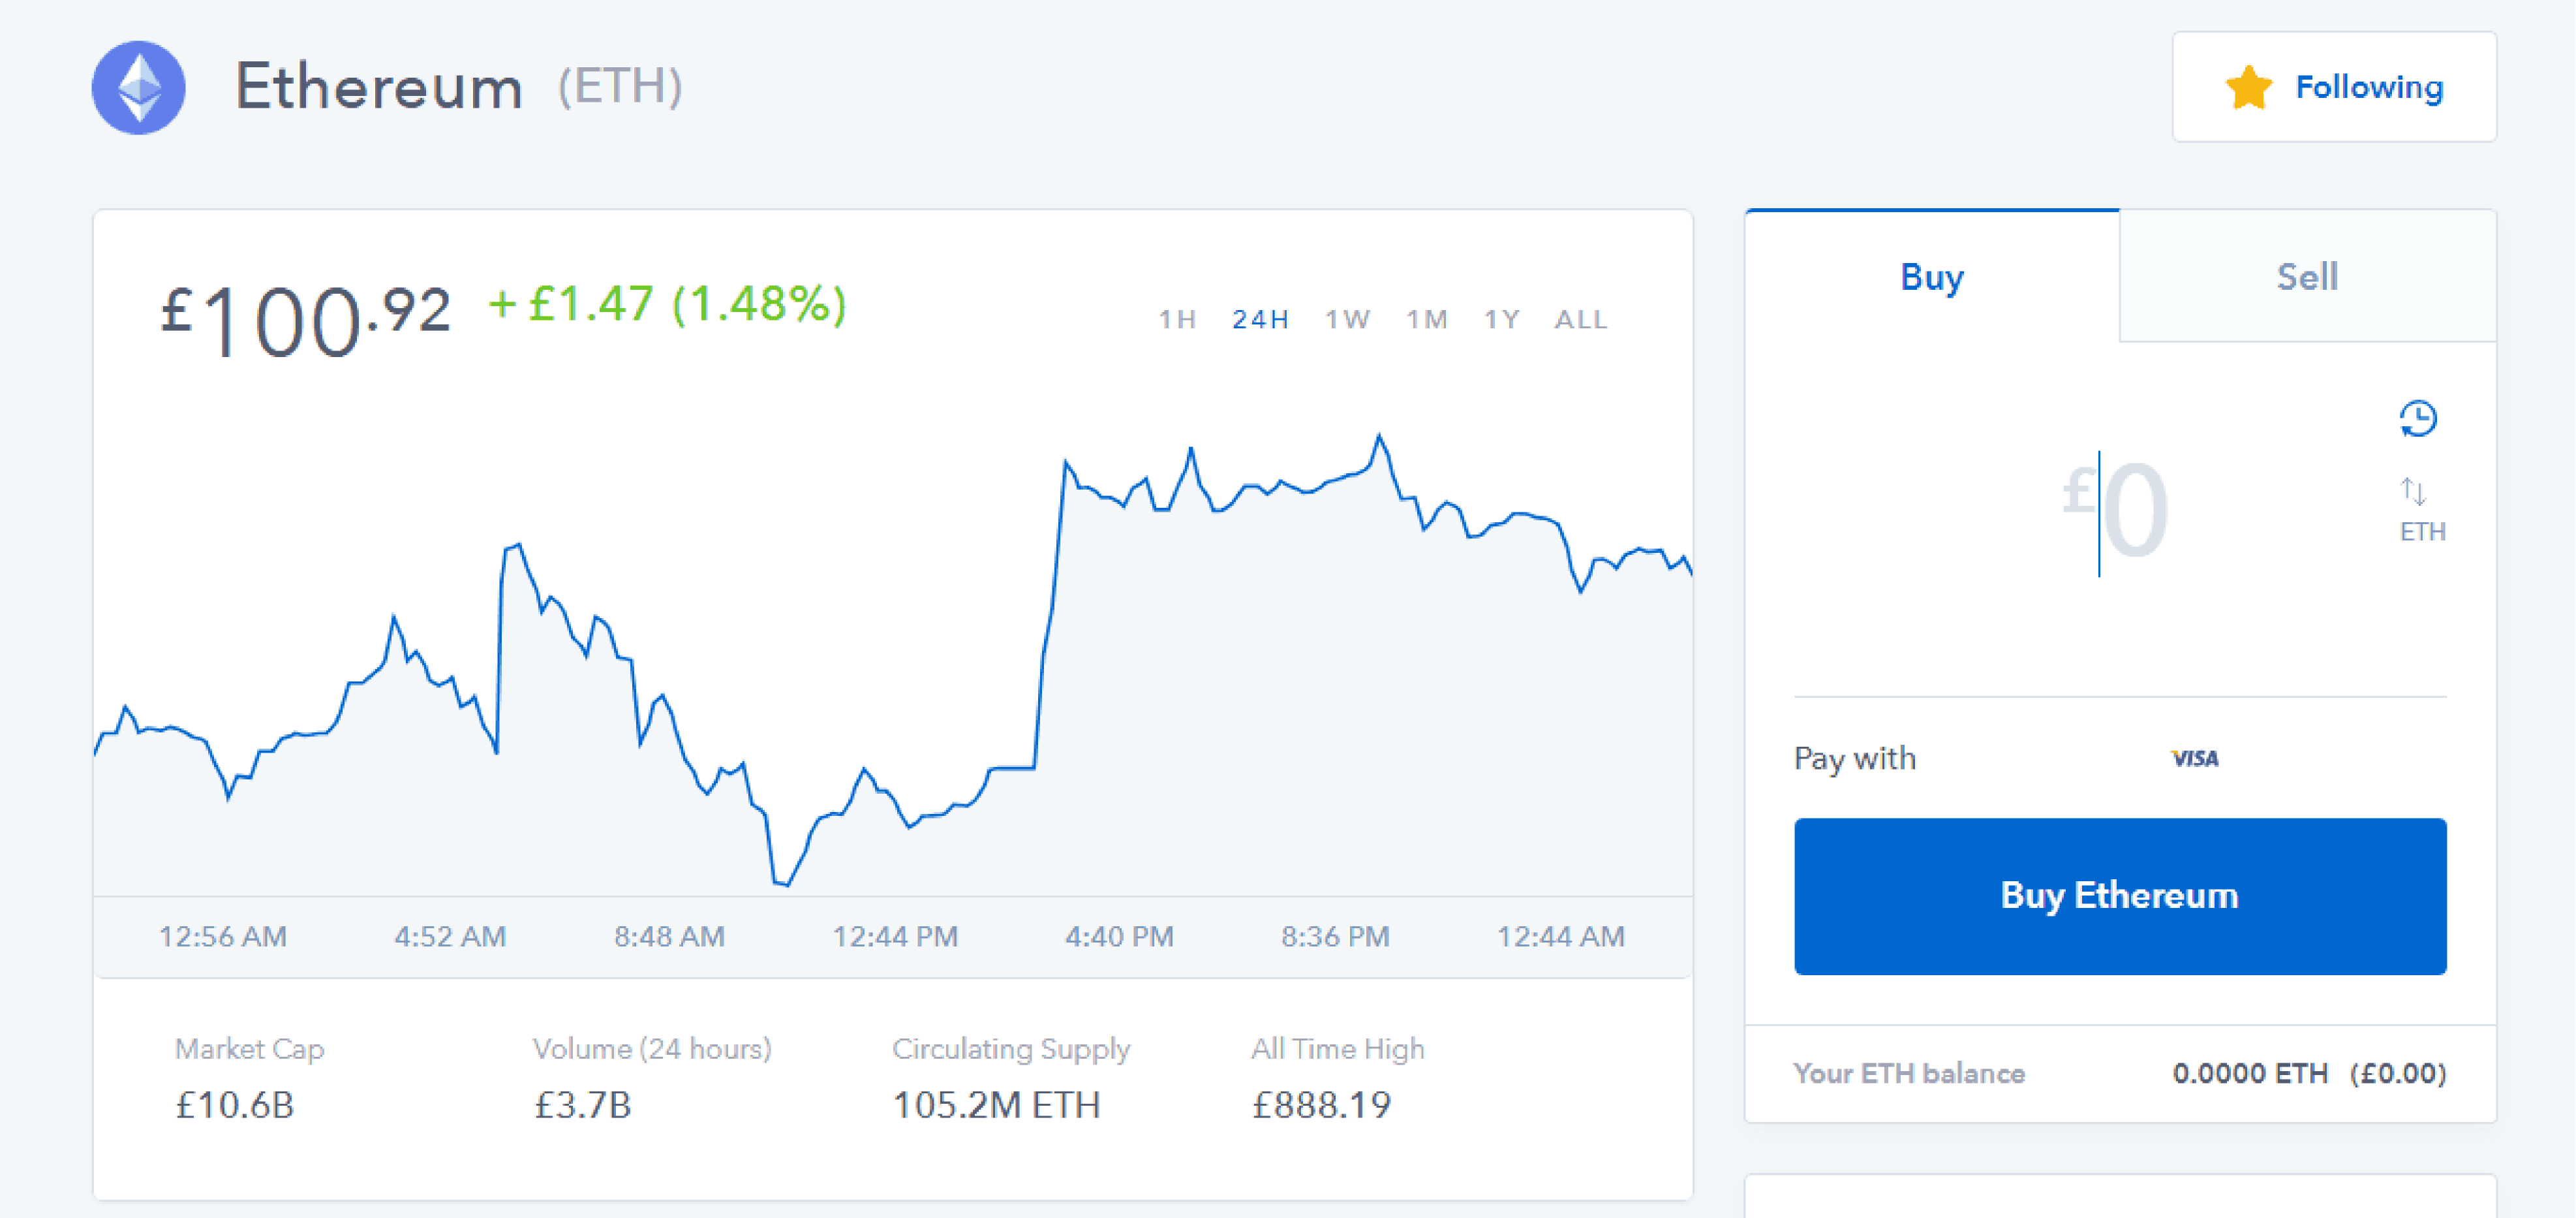 buy and sell historic data in cryptocurrency